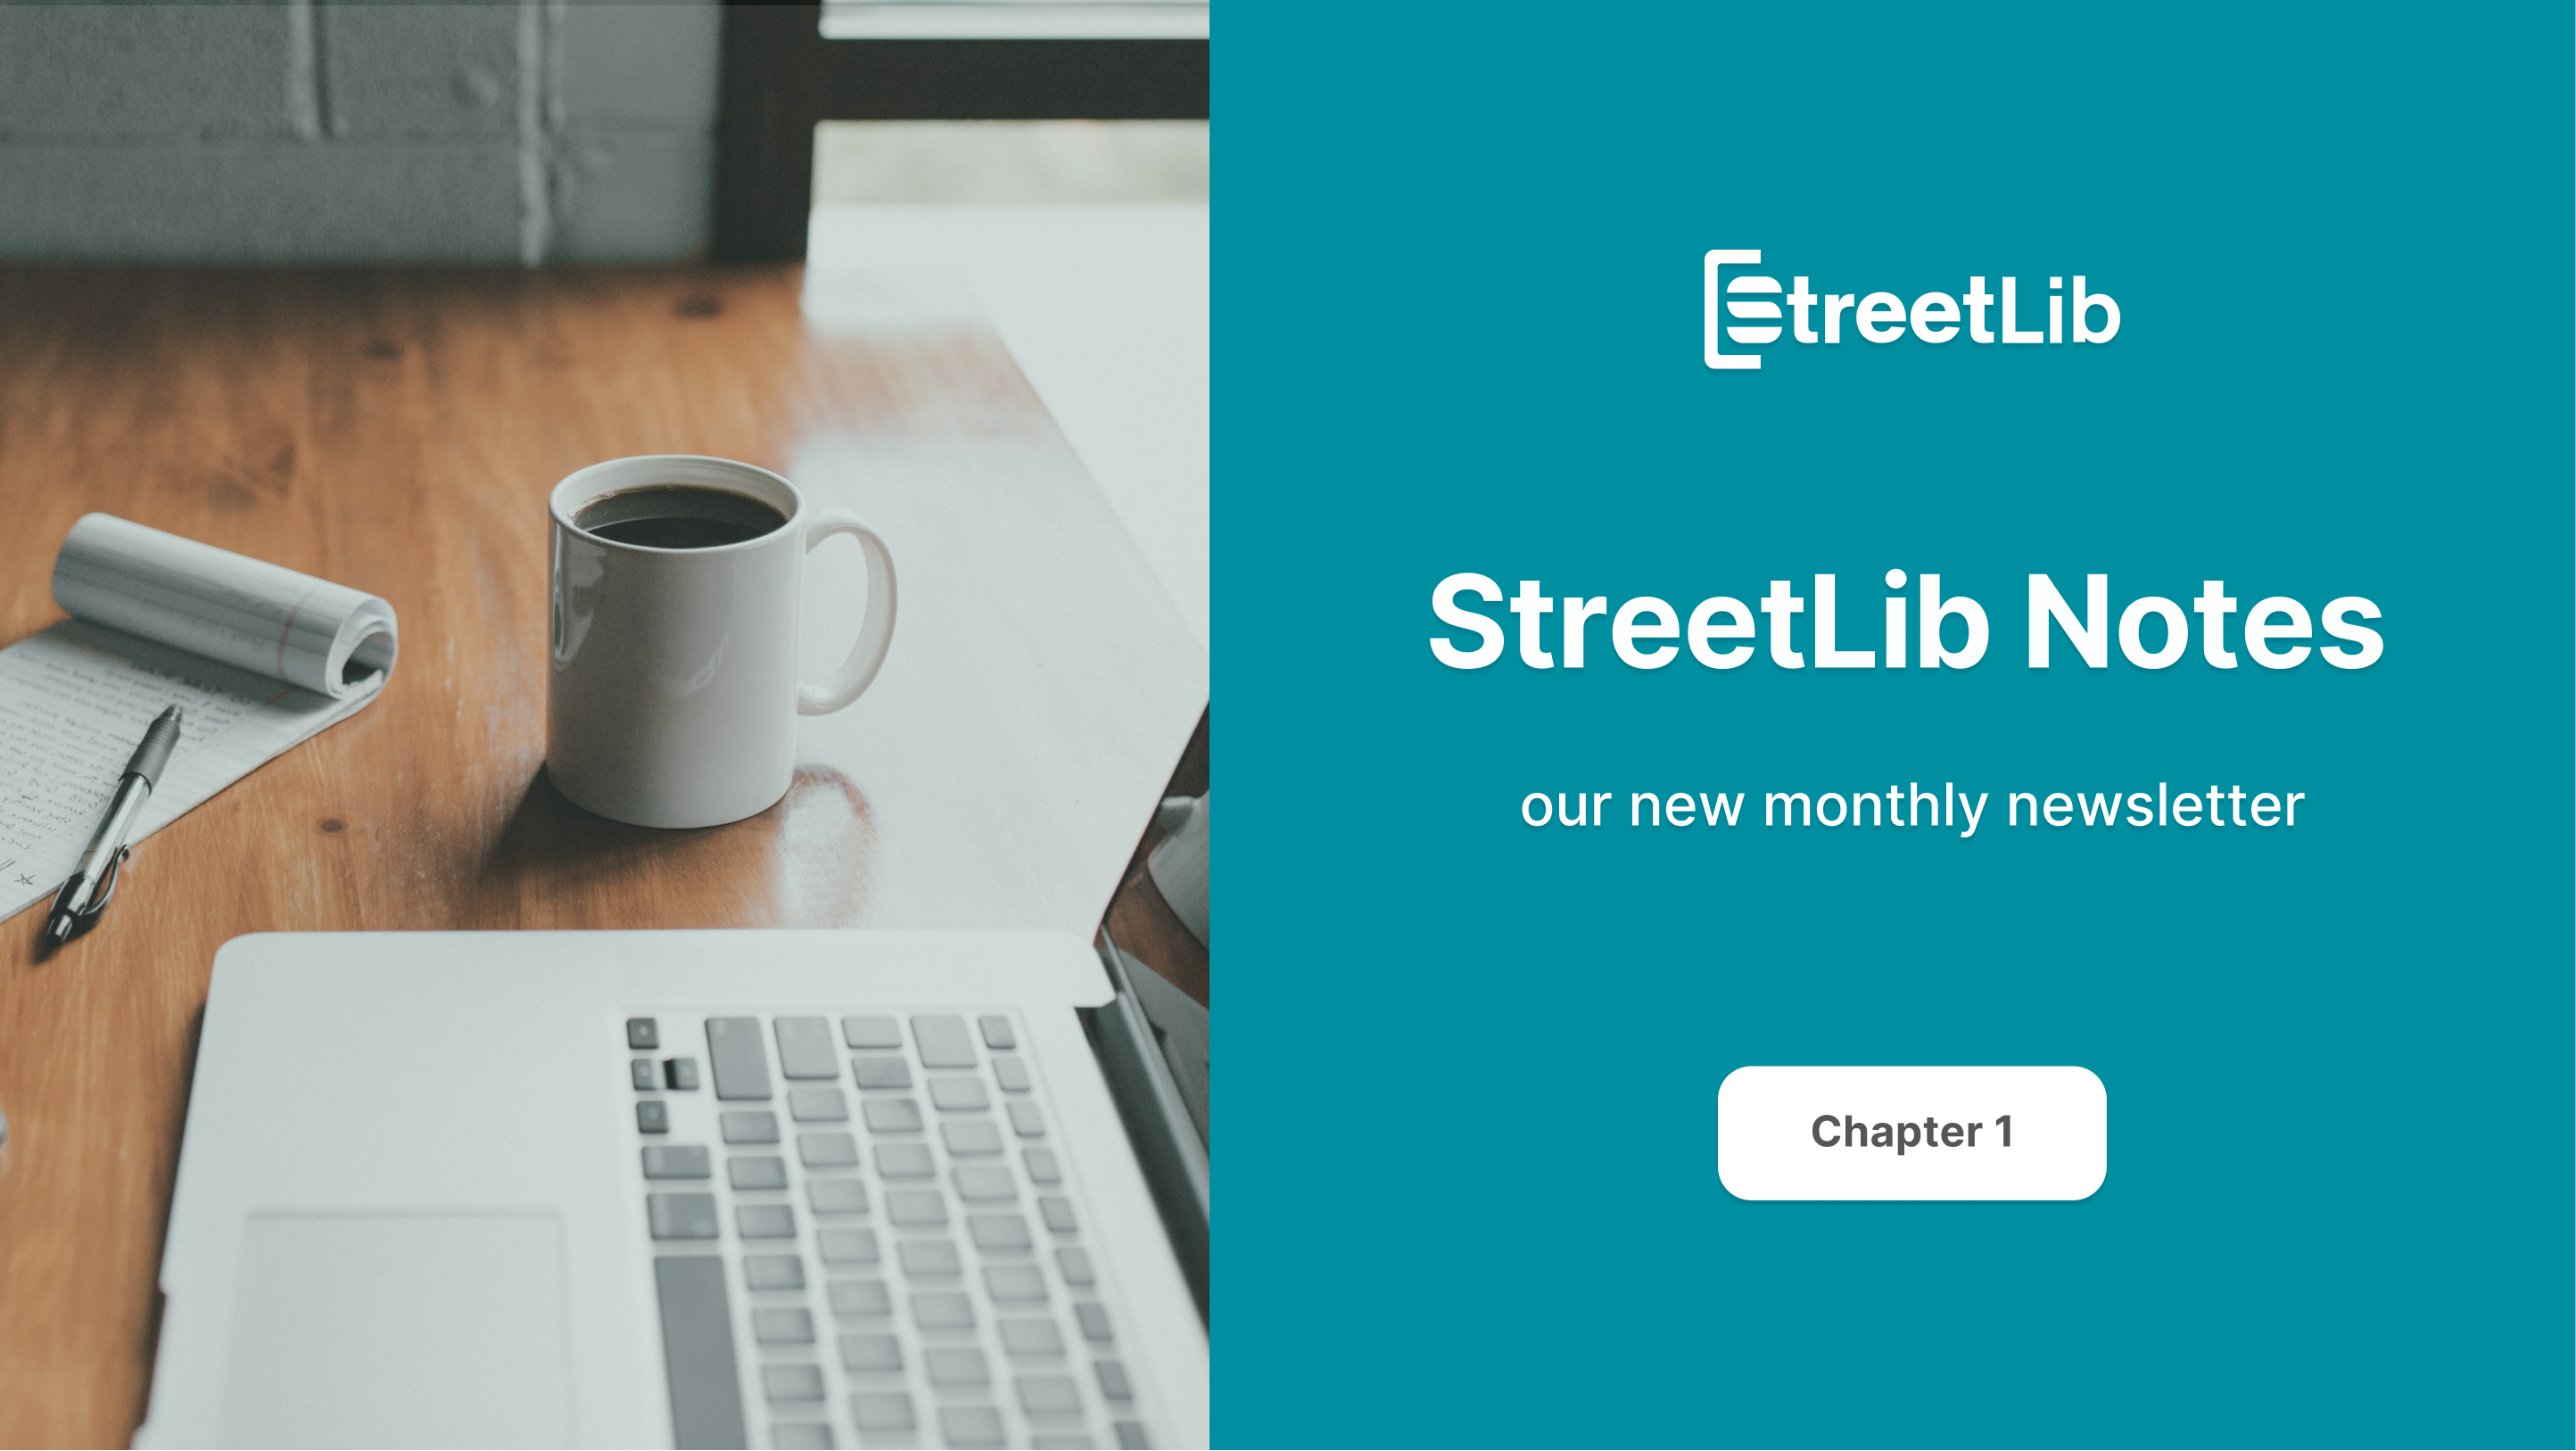 StreetLib Notes, our new monthly newsletter